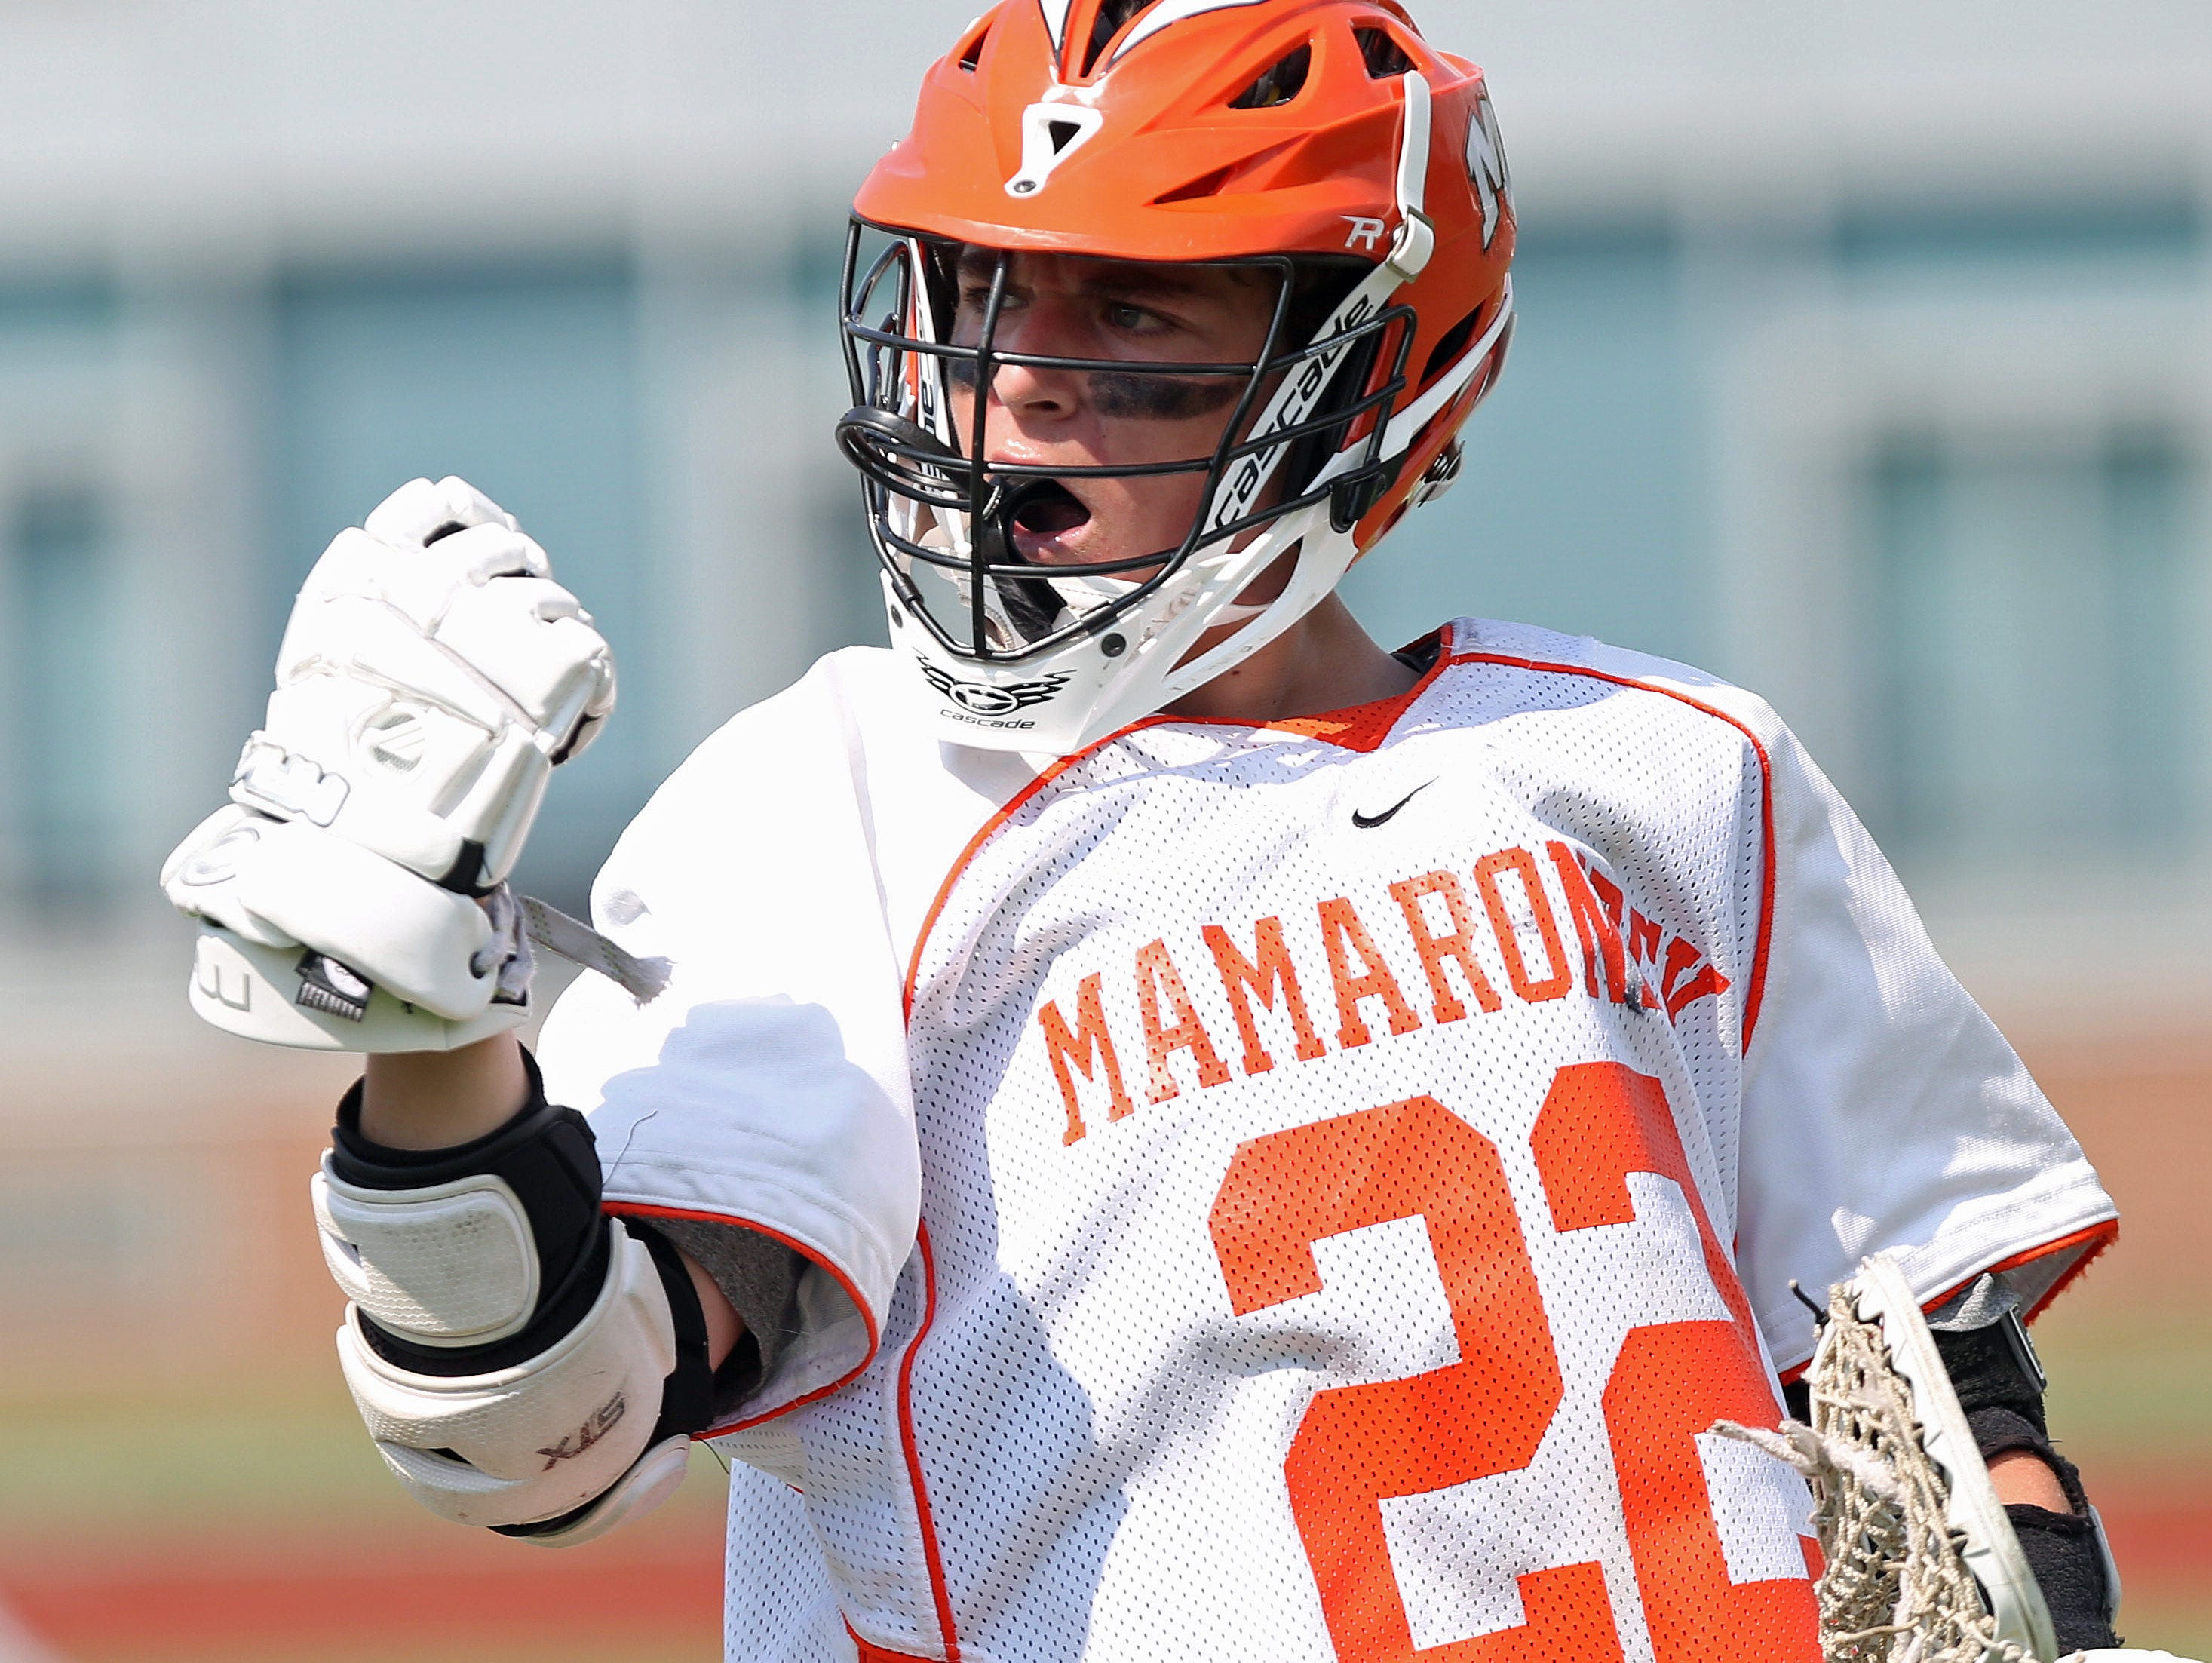 Mamaroneck will need a lot of goals from midfielder Eric Greenberg while the new faces in the lineup get used to playing bigger roles.